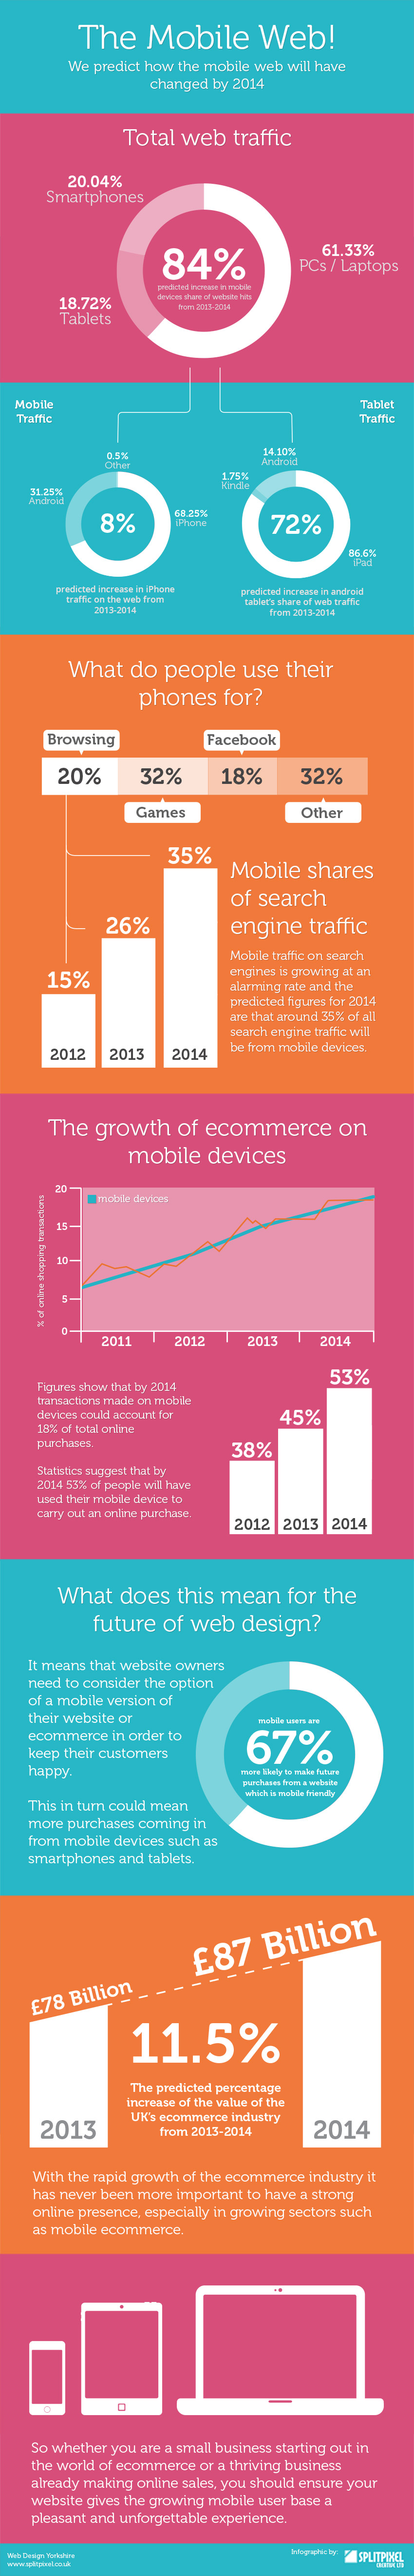 How the mobile web will affect ecommerce industry